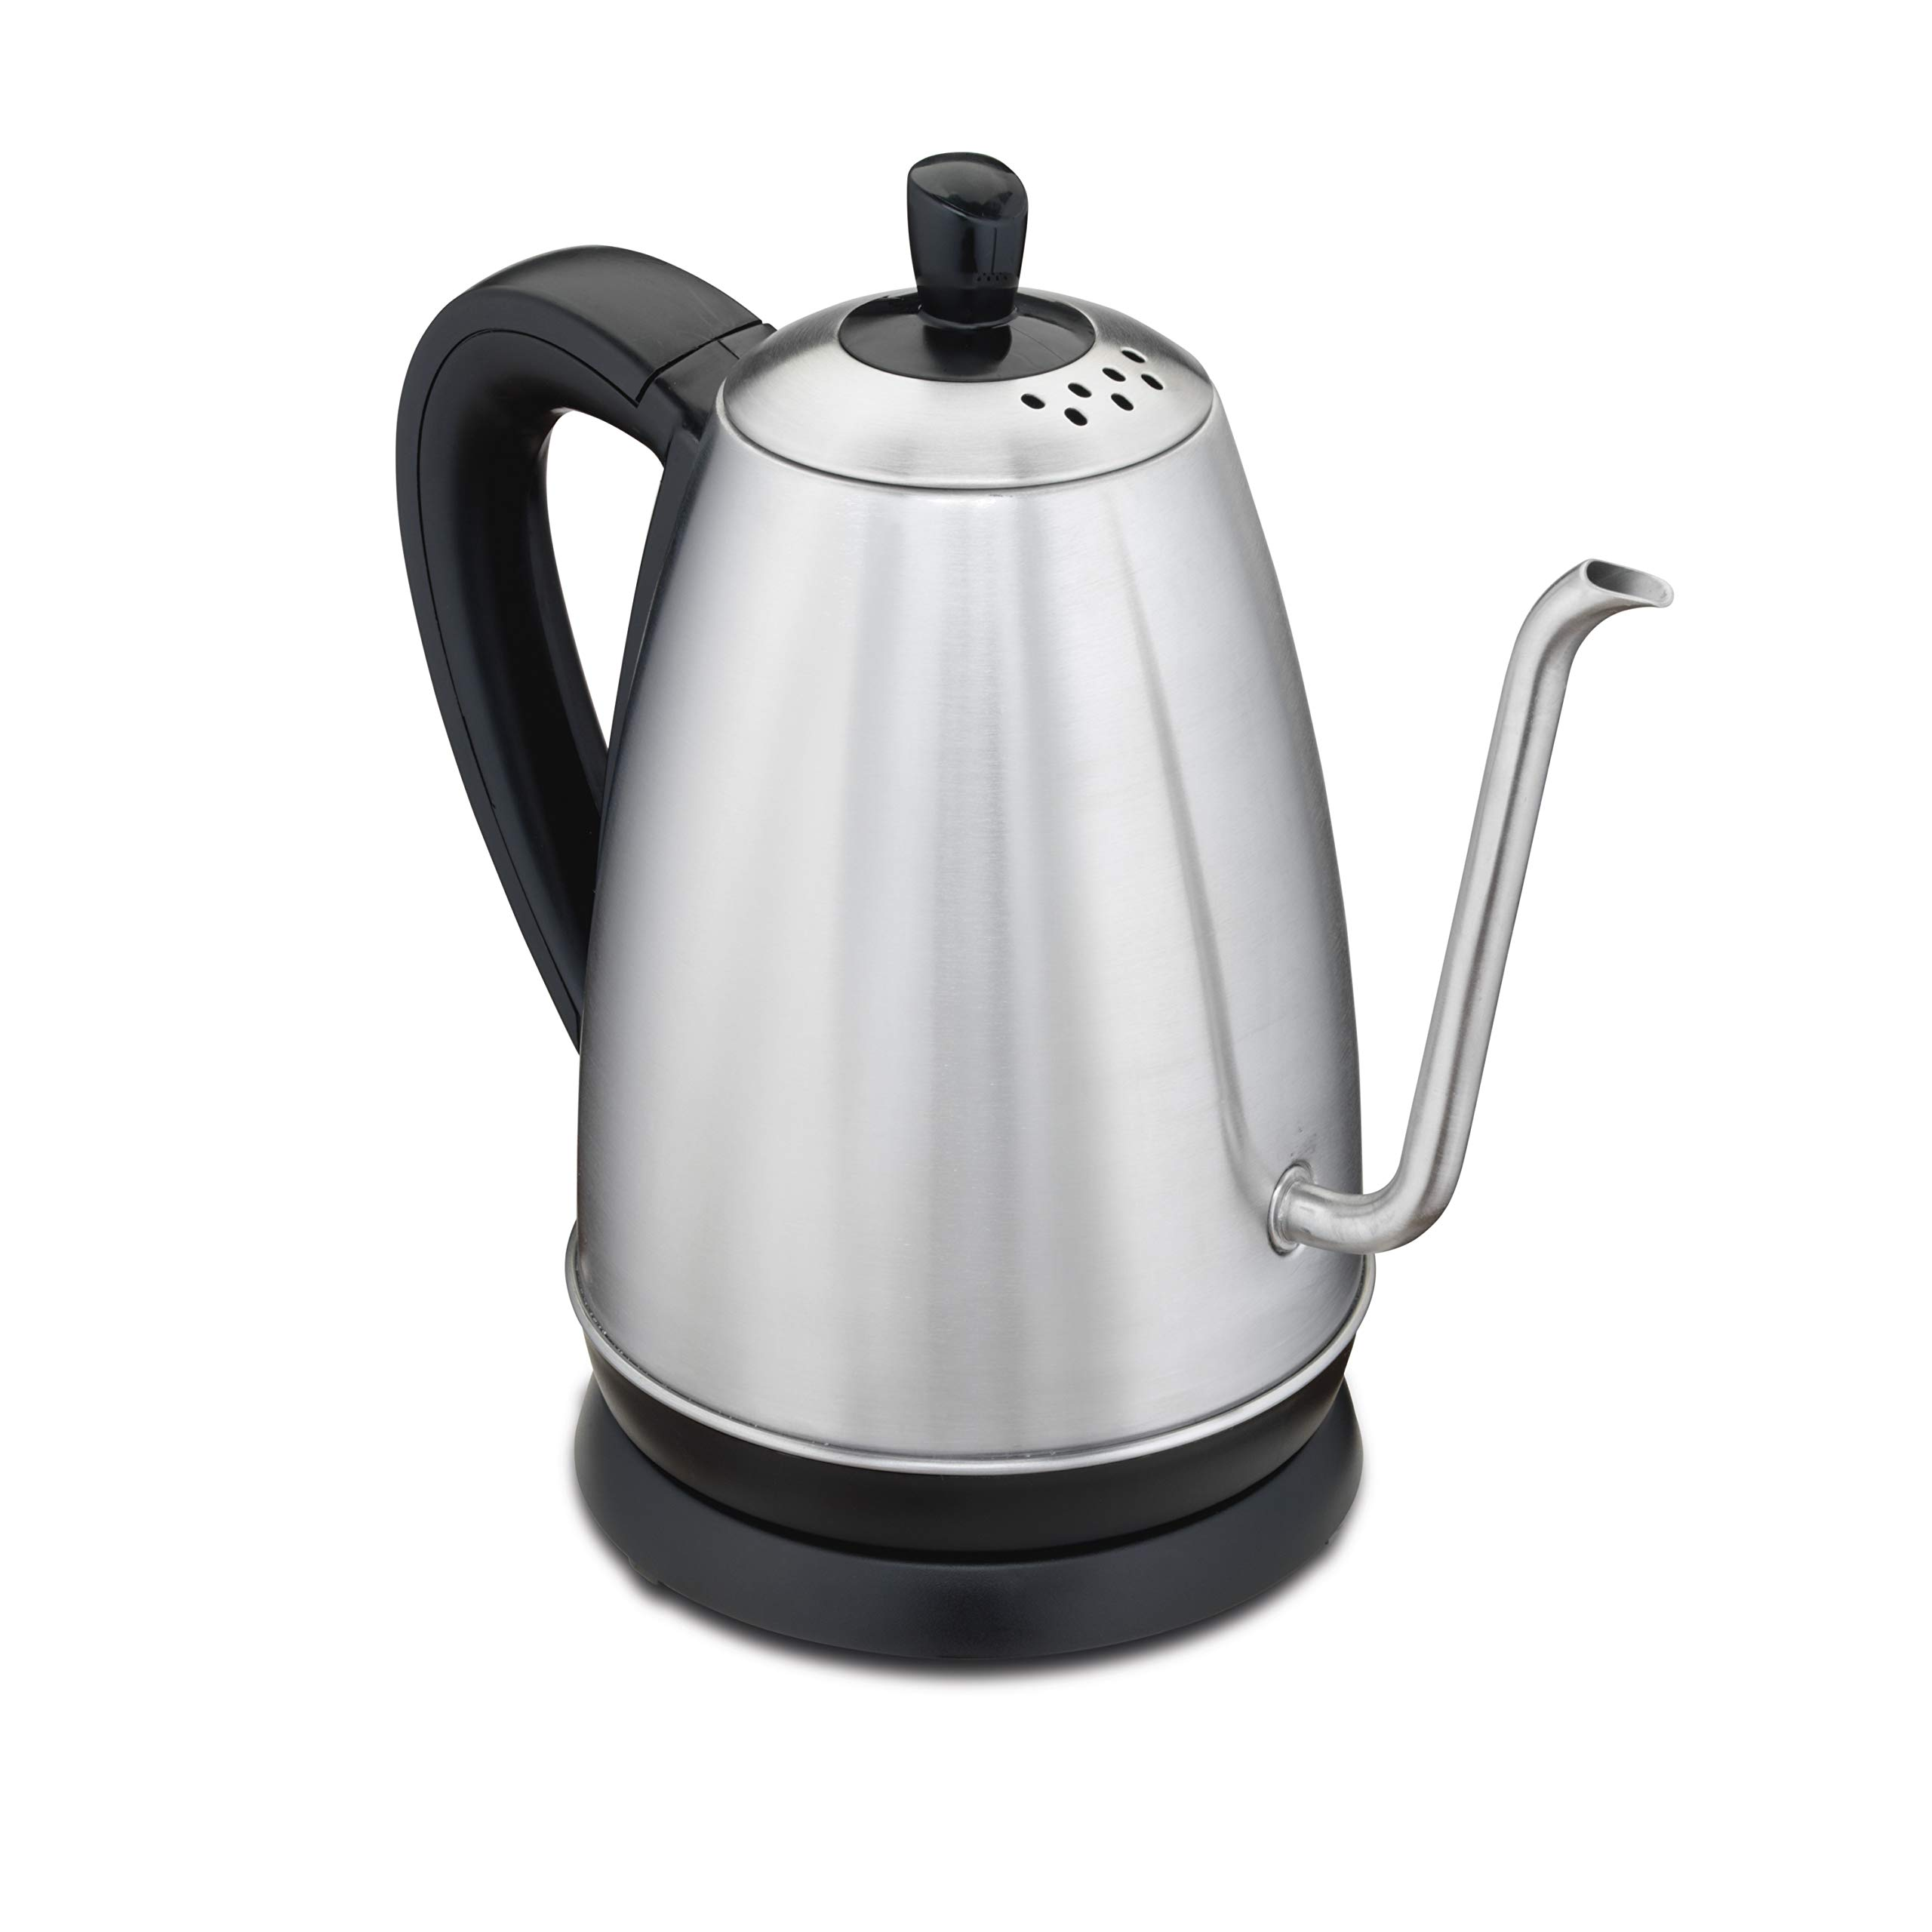 Hamilton Beach 1.2 Liter Gooseneck Pour Over Electric Kettle for Tea and Hot Water, Cordless, Auto-Shutoff and Boil-Dry Protection, Stainless Steel (40899) by Hamilton Beach